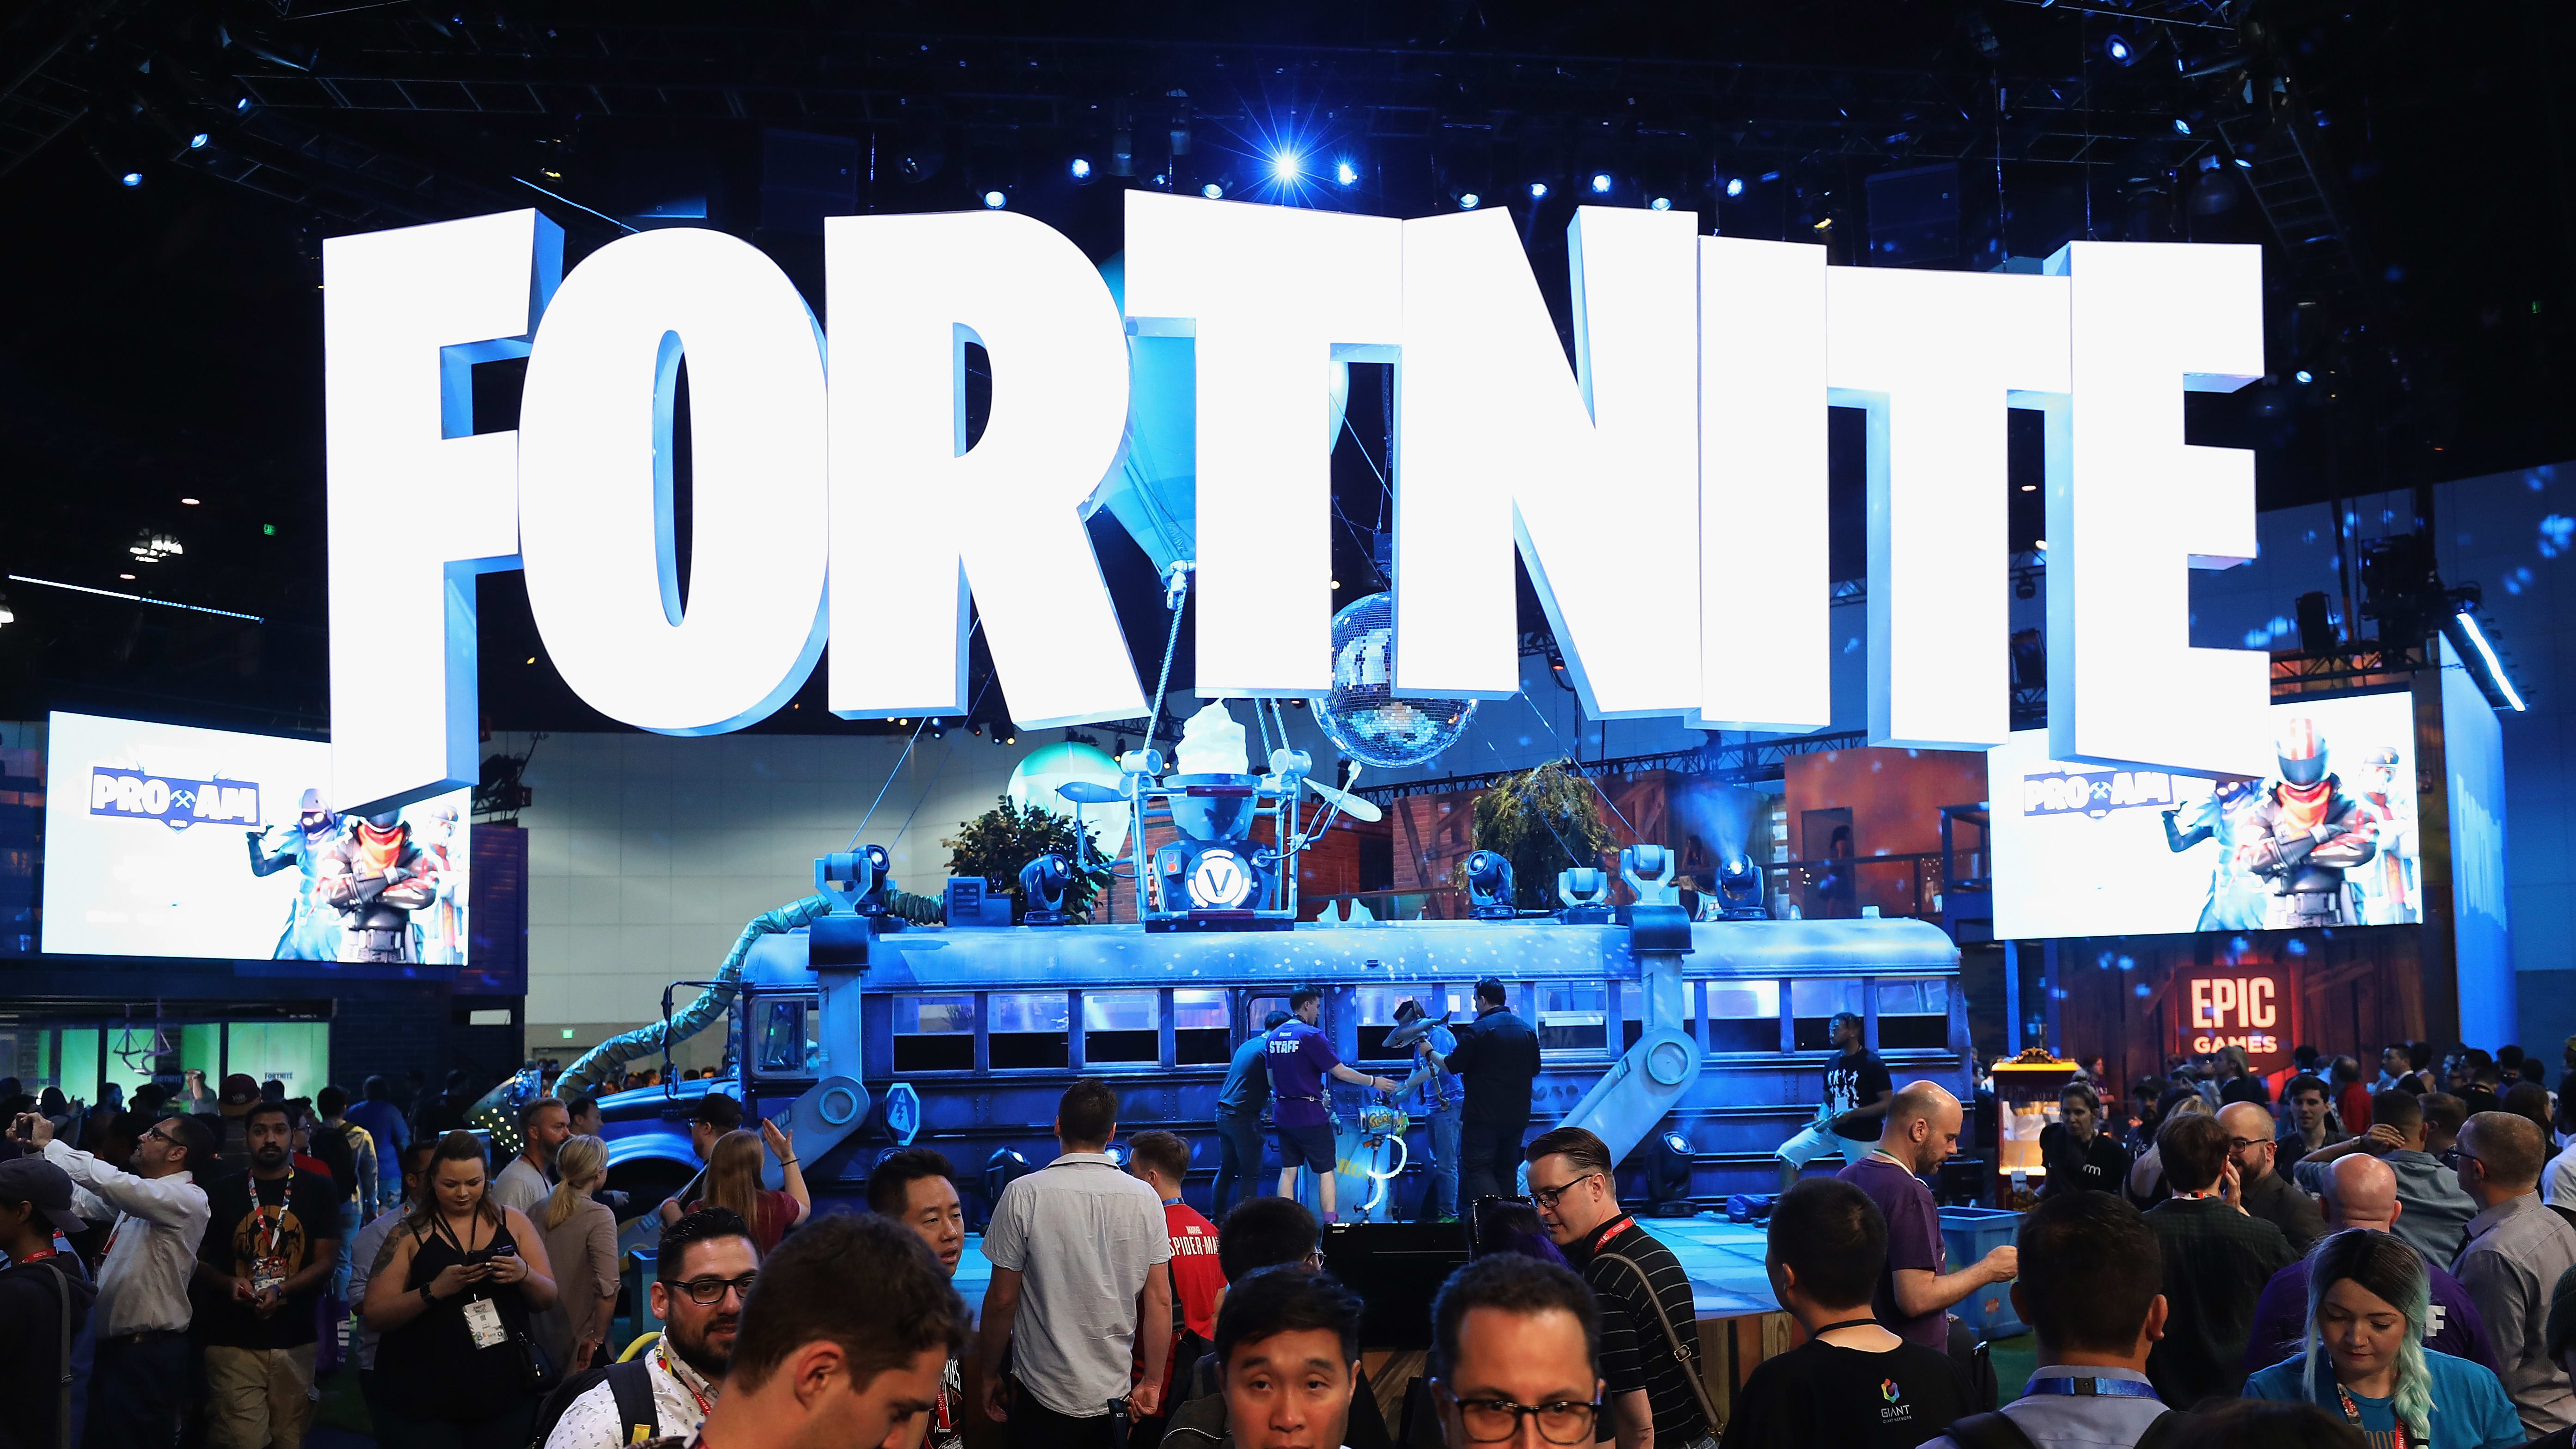 LOS ANGELES, CA - JUNE 12:  Game enthusiasts and industry personnel visit the 'Fortnite' exhibit during the Electronic Entertainment Expo E3 at the Los Angeles Convention Center on June 12, 2018 in Los Angeles, California.  (Photo by Christian Petersen/Getty Images)